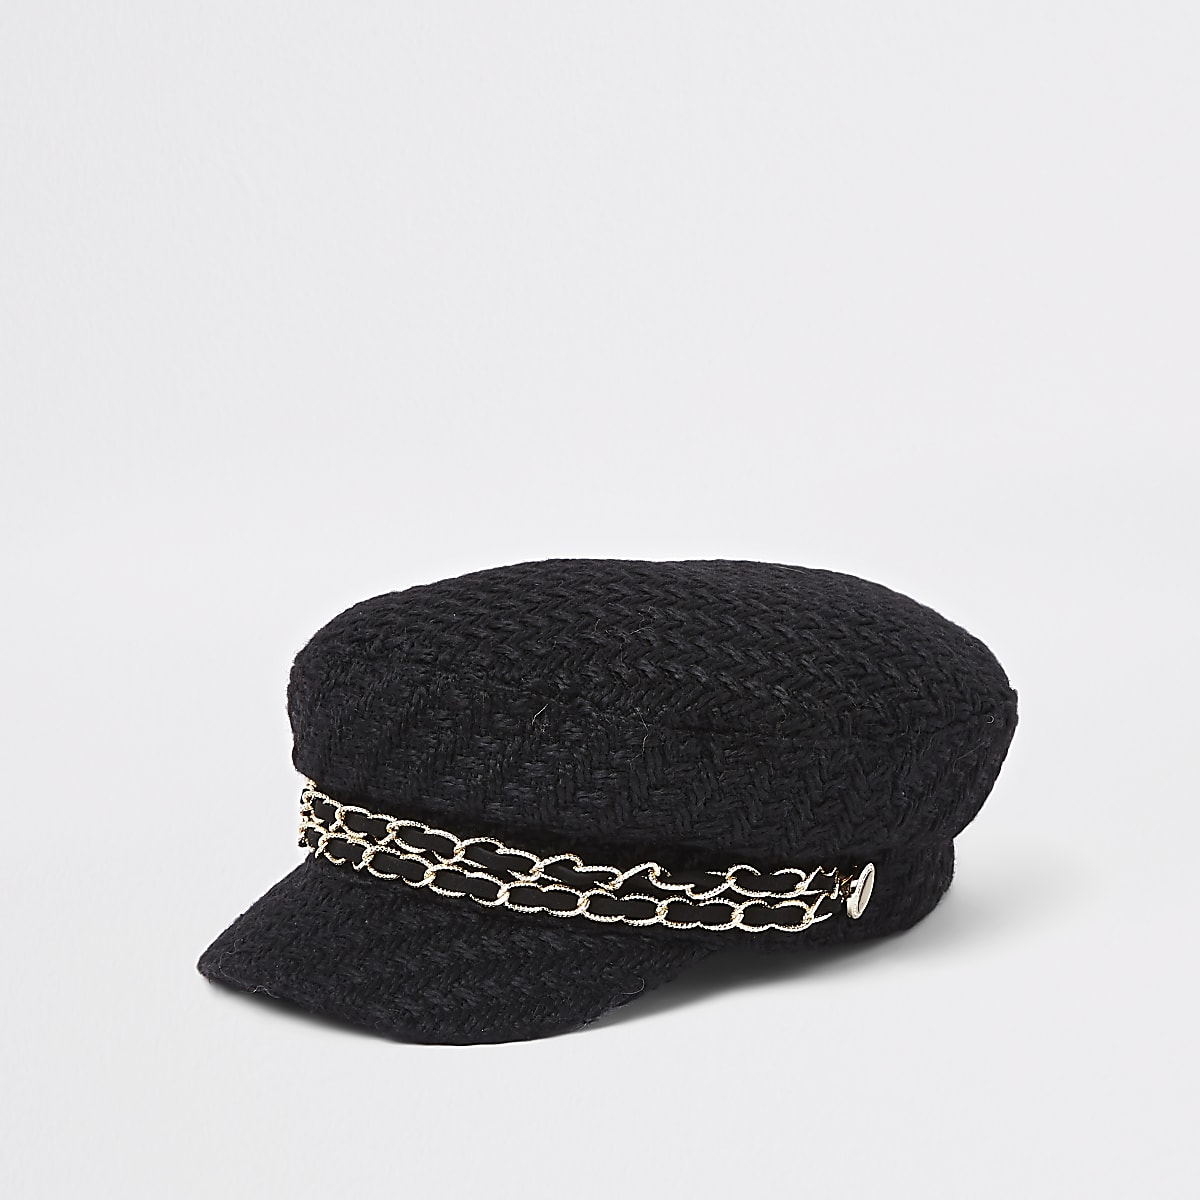 Black double chain baker boy hat